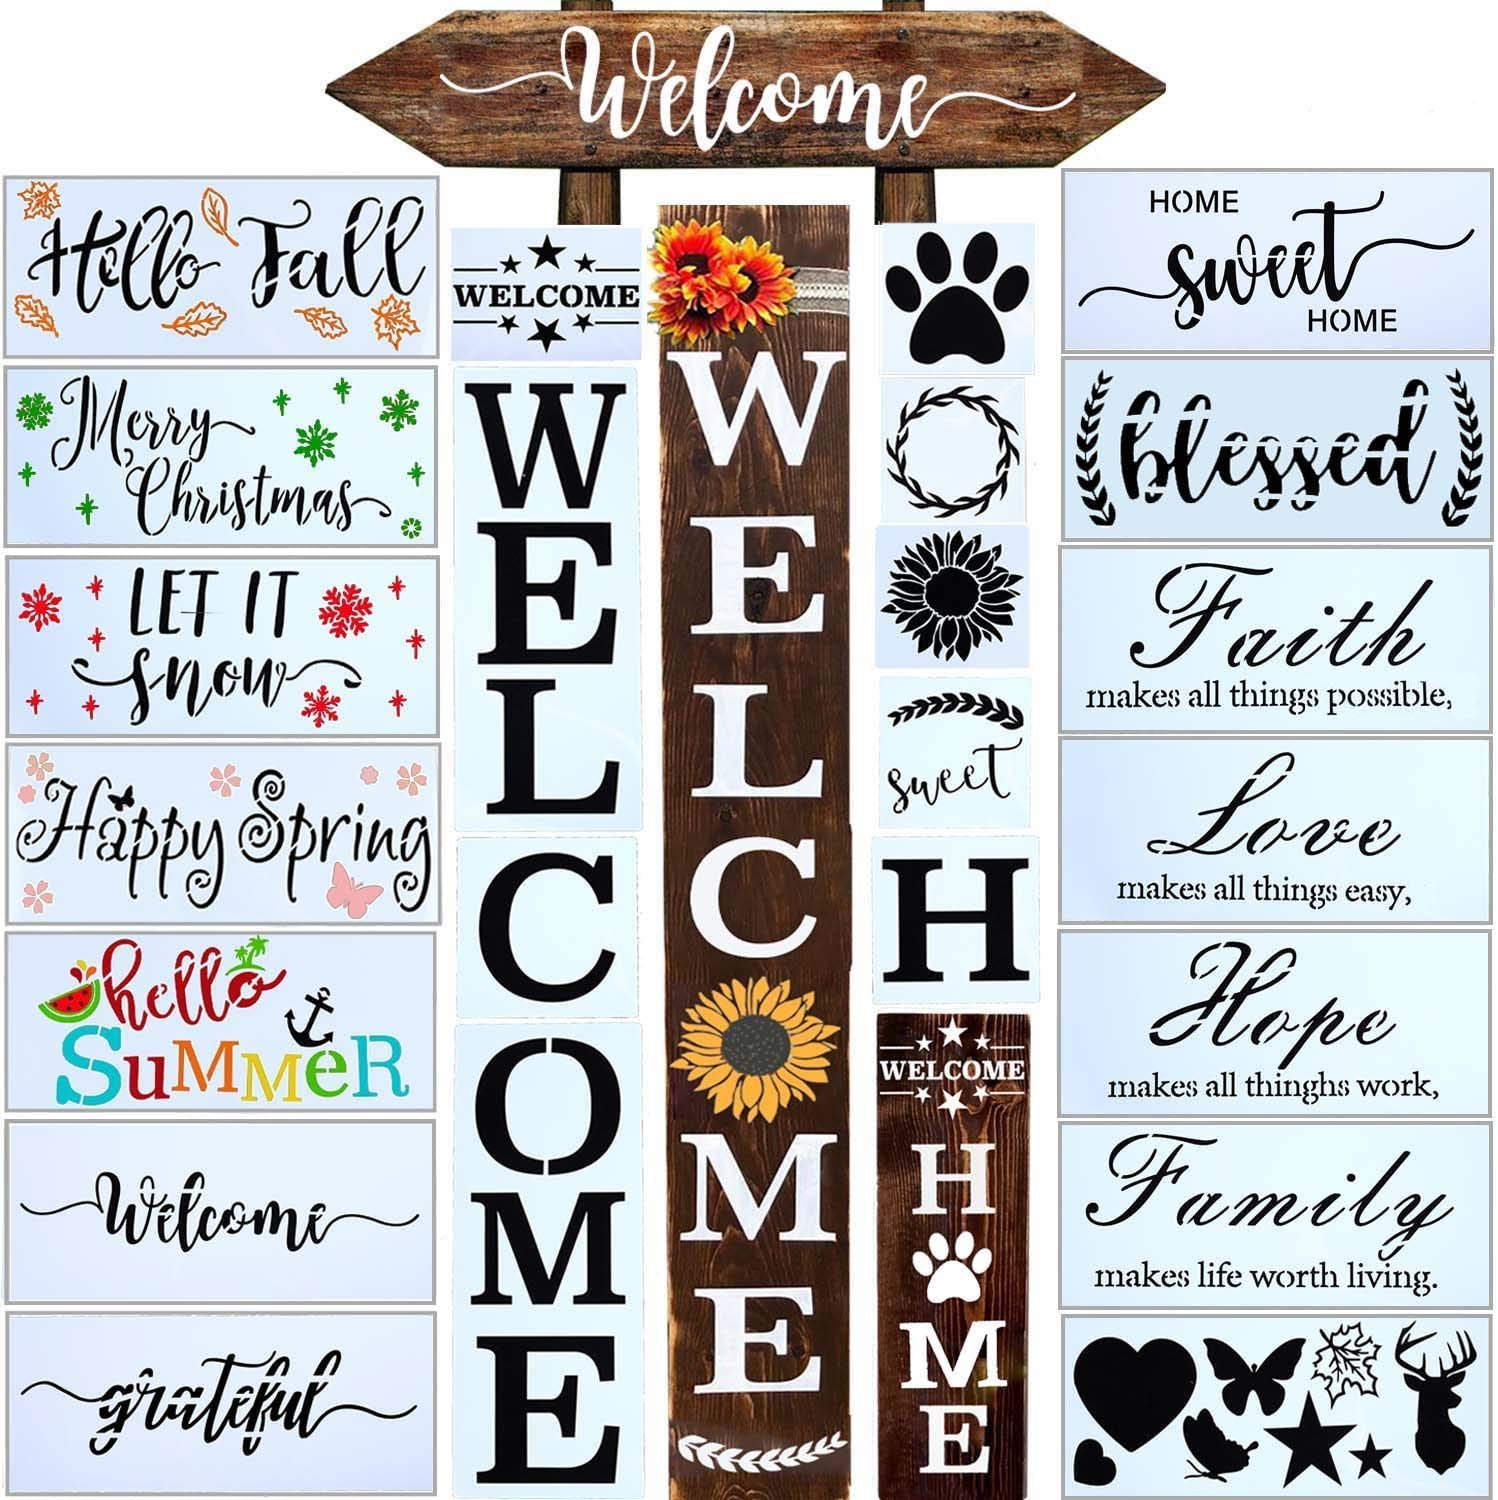 24 PCS Welcome Stencil for Painting on Wood,Home Sign Stencils Reusable Porch Sign and Front Door Vertical Welcome Comes with Stencil-Sunflower,Dog Paw Stencil and orther Pattern